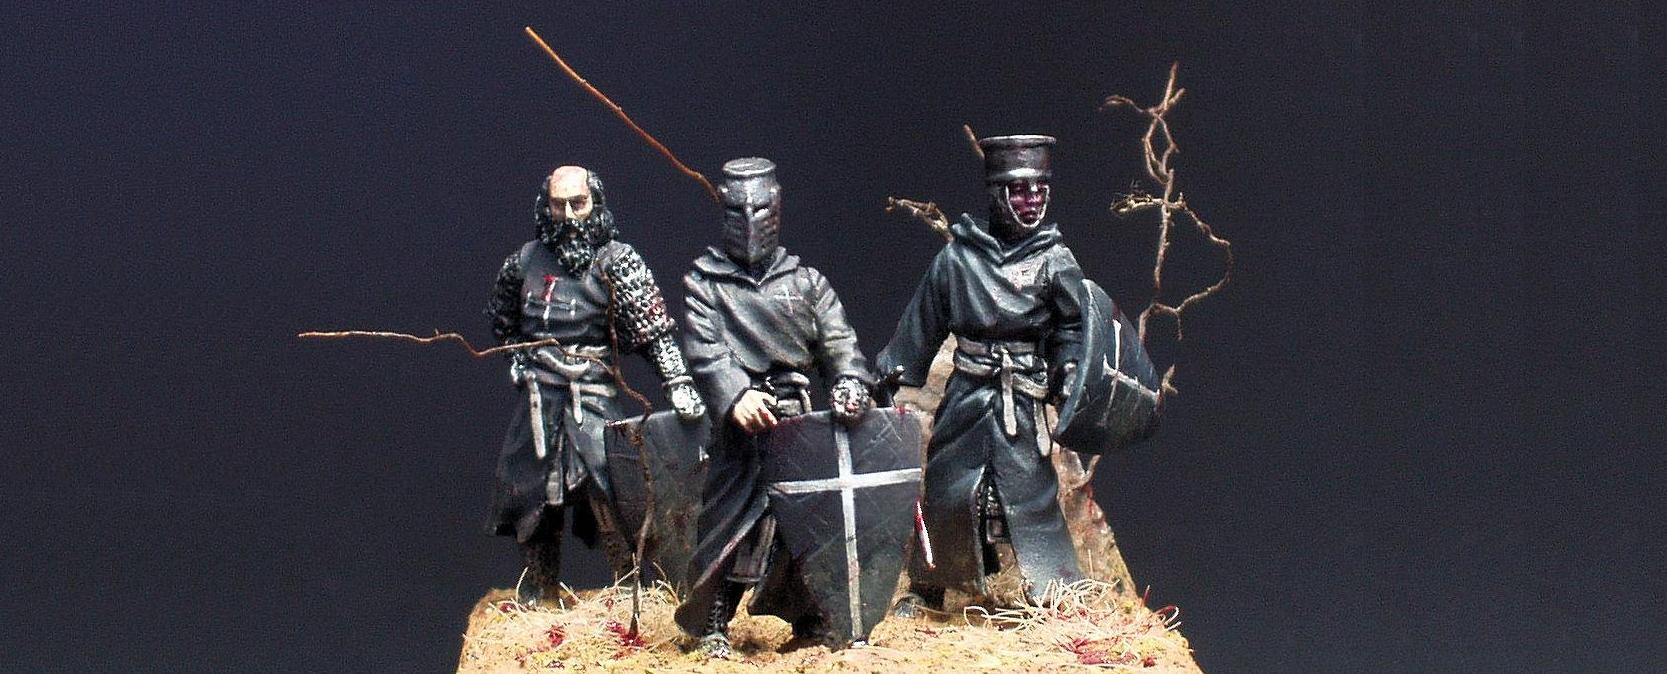 Valdemar Miniatures 25mm Medieval Figures wargaming.info